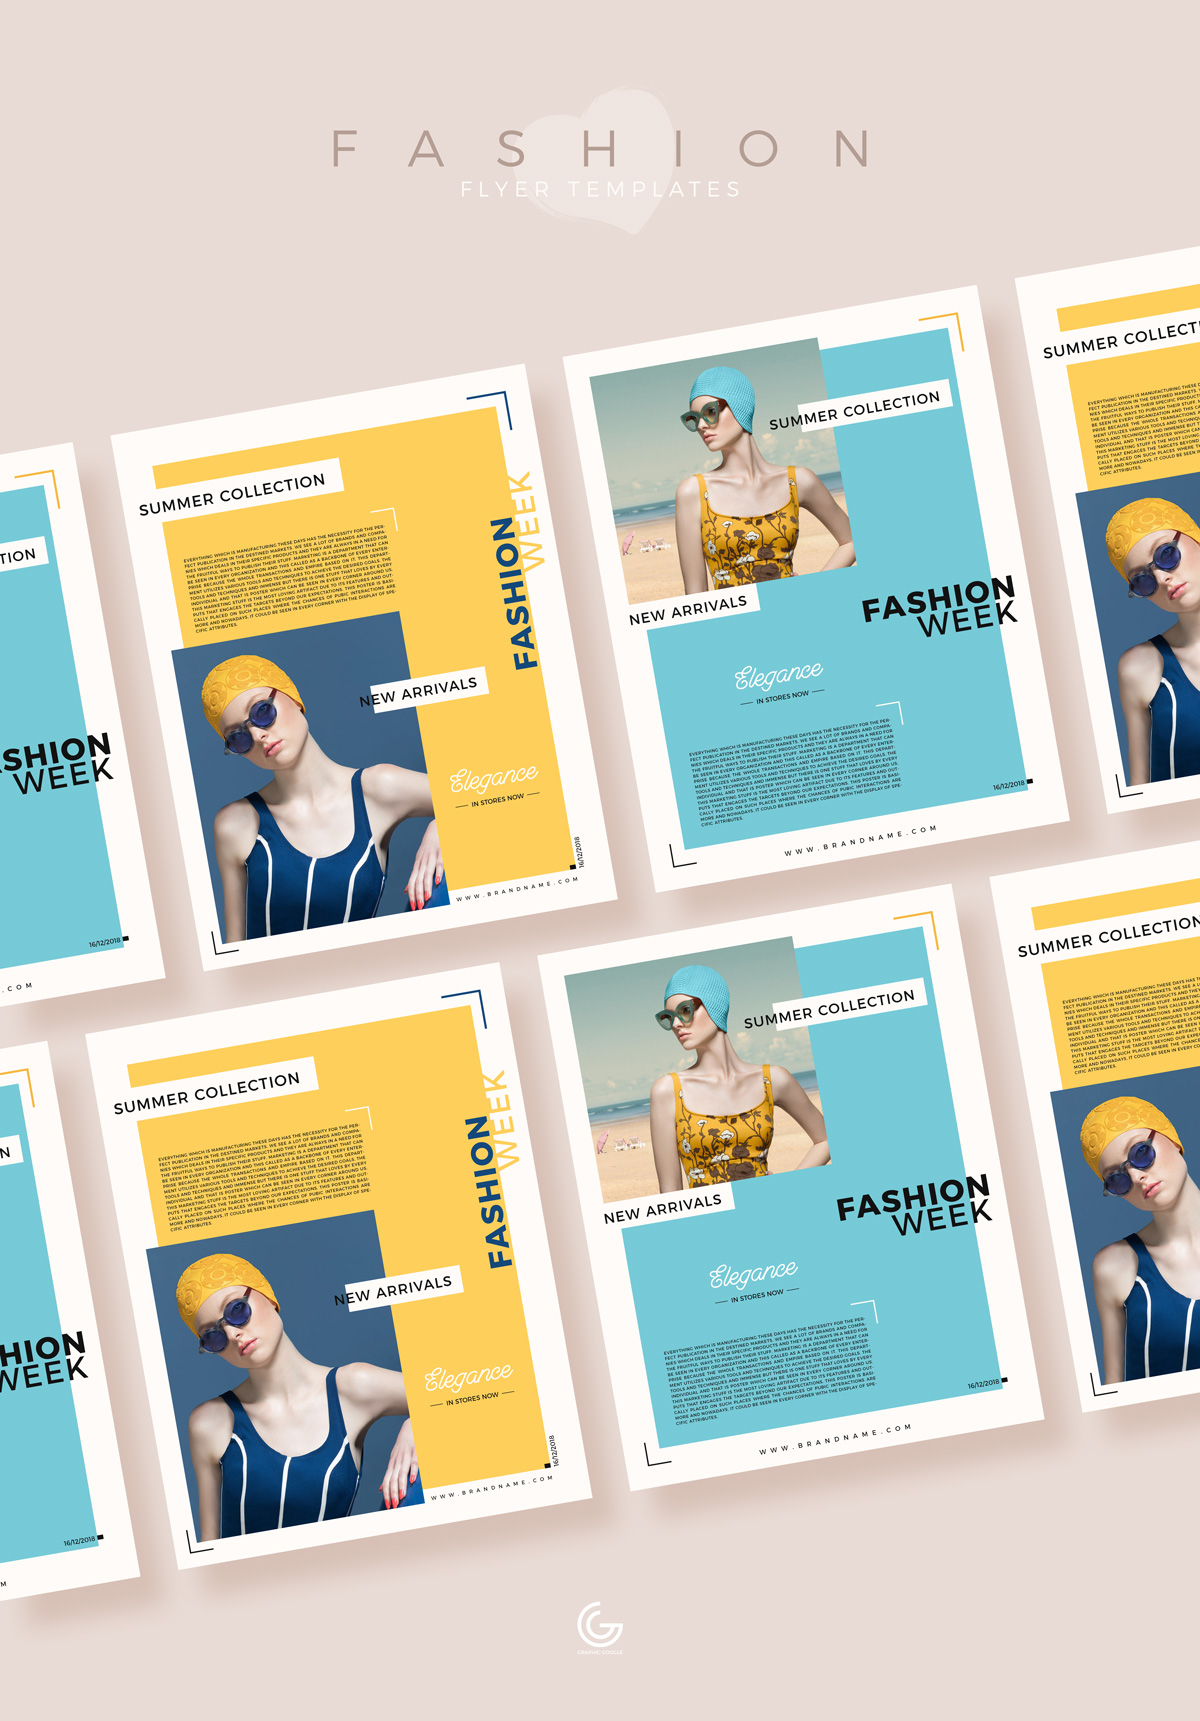 Free-Summer-Collection-Fashion-Flyer-Templates-For-2019-600